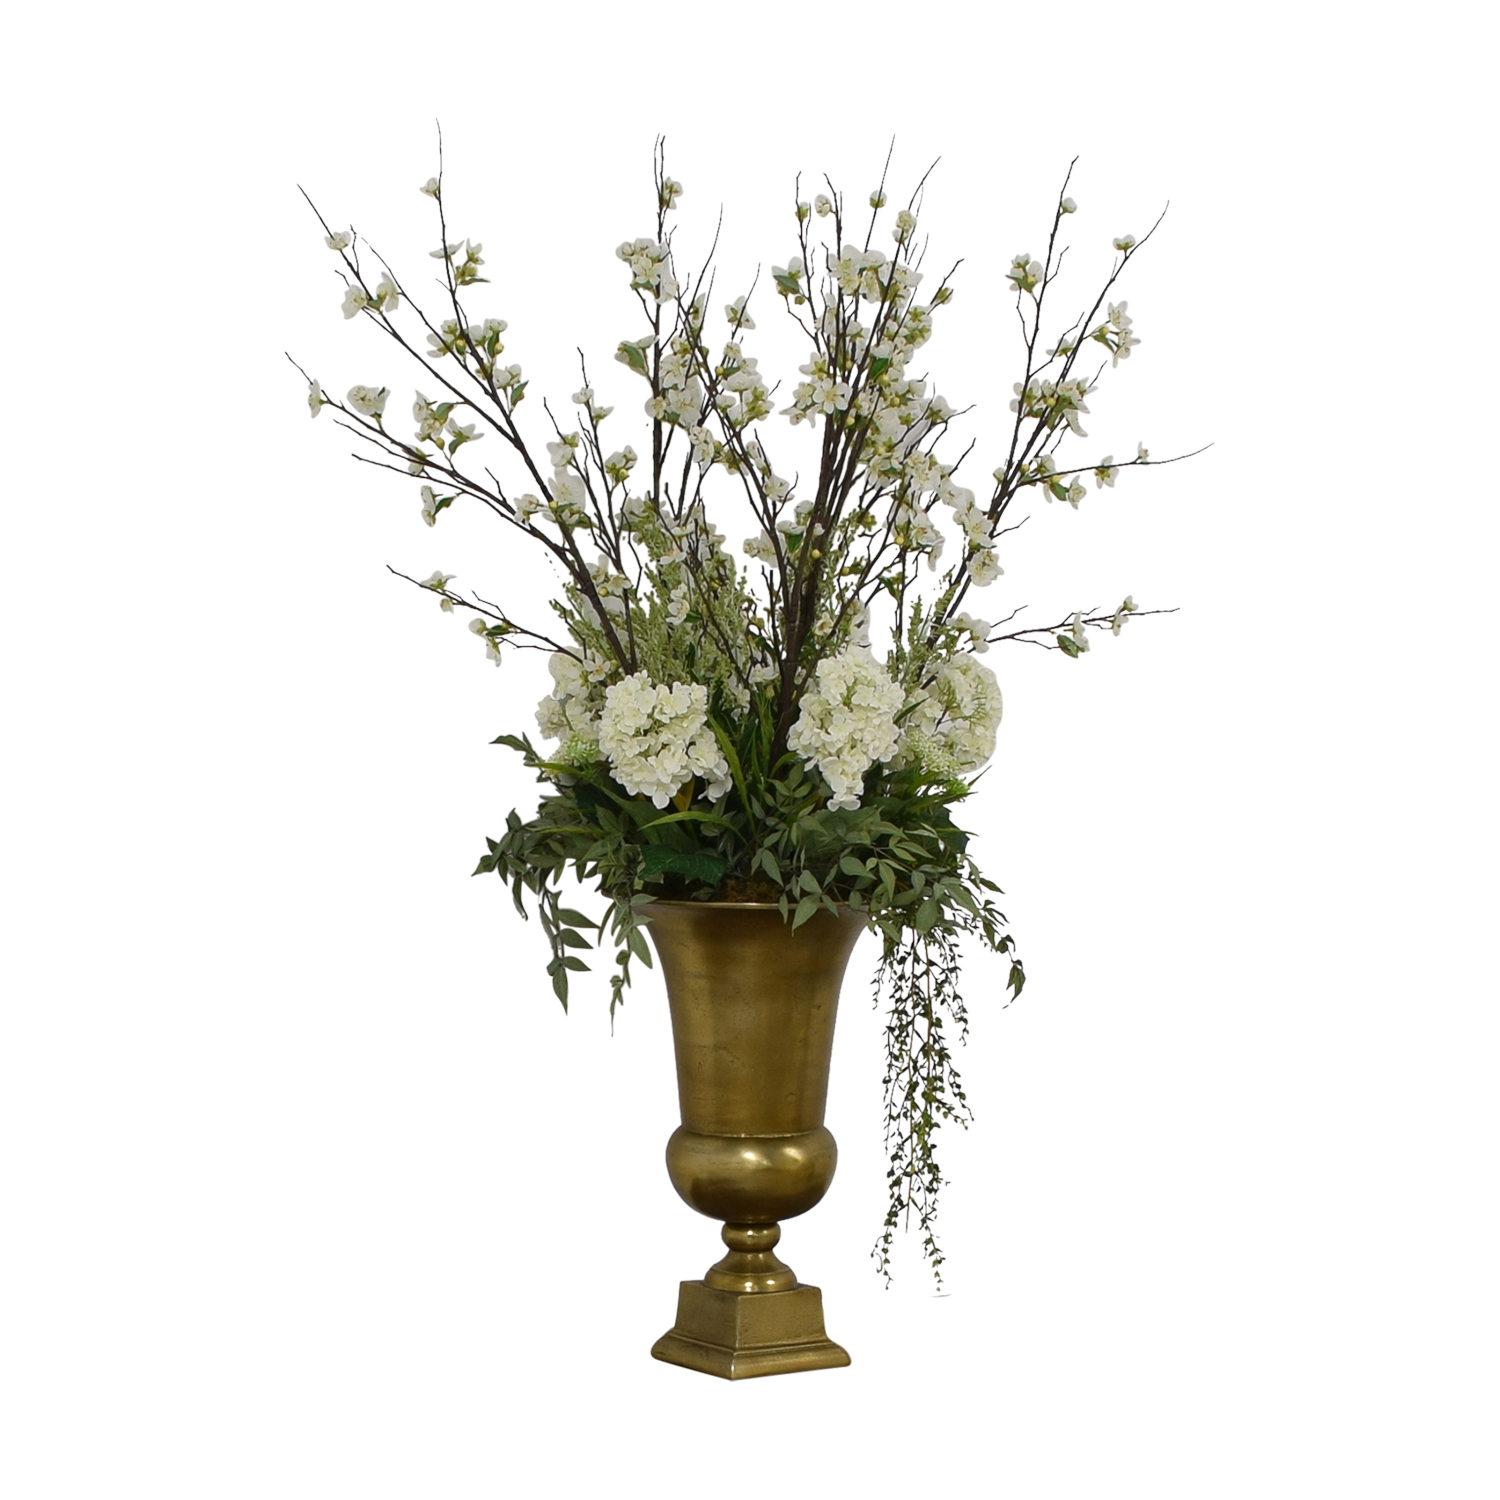 Jonathan-Richard Jonathan-Richard Southern Roots Faux Floral Arrangement coupon